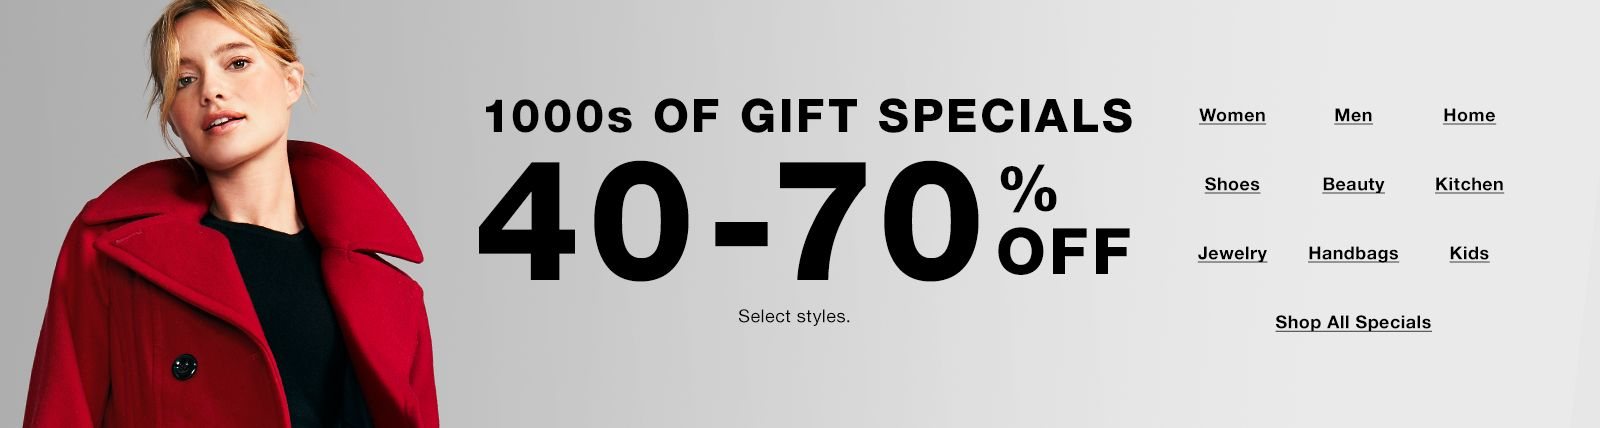 1000s of Gifts Specials, 40-70 percent off, select styles, Women, Men, Home, Shoes, Beauty, Kitchen, Jewelry, Handbags, Kids, Shop All Specials